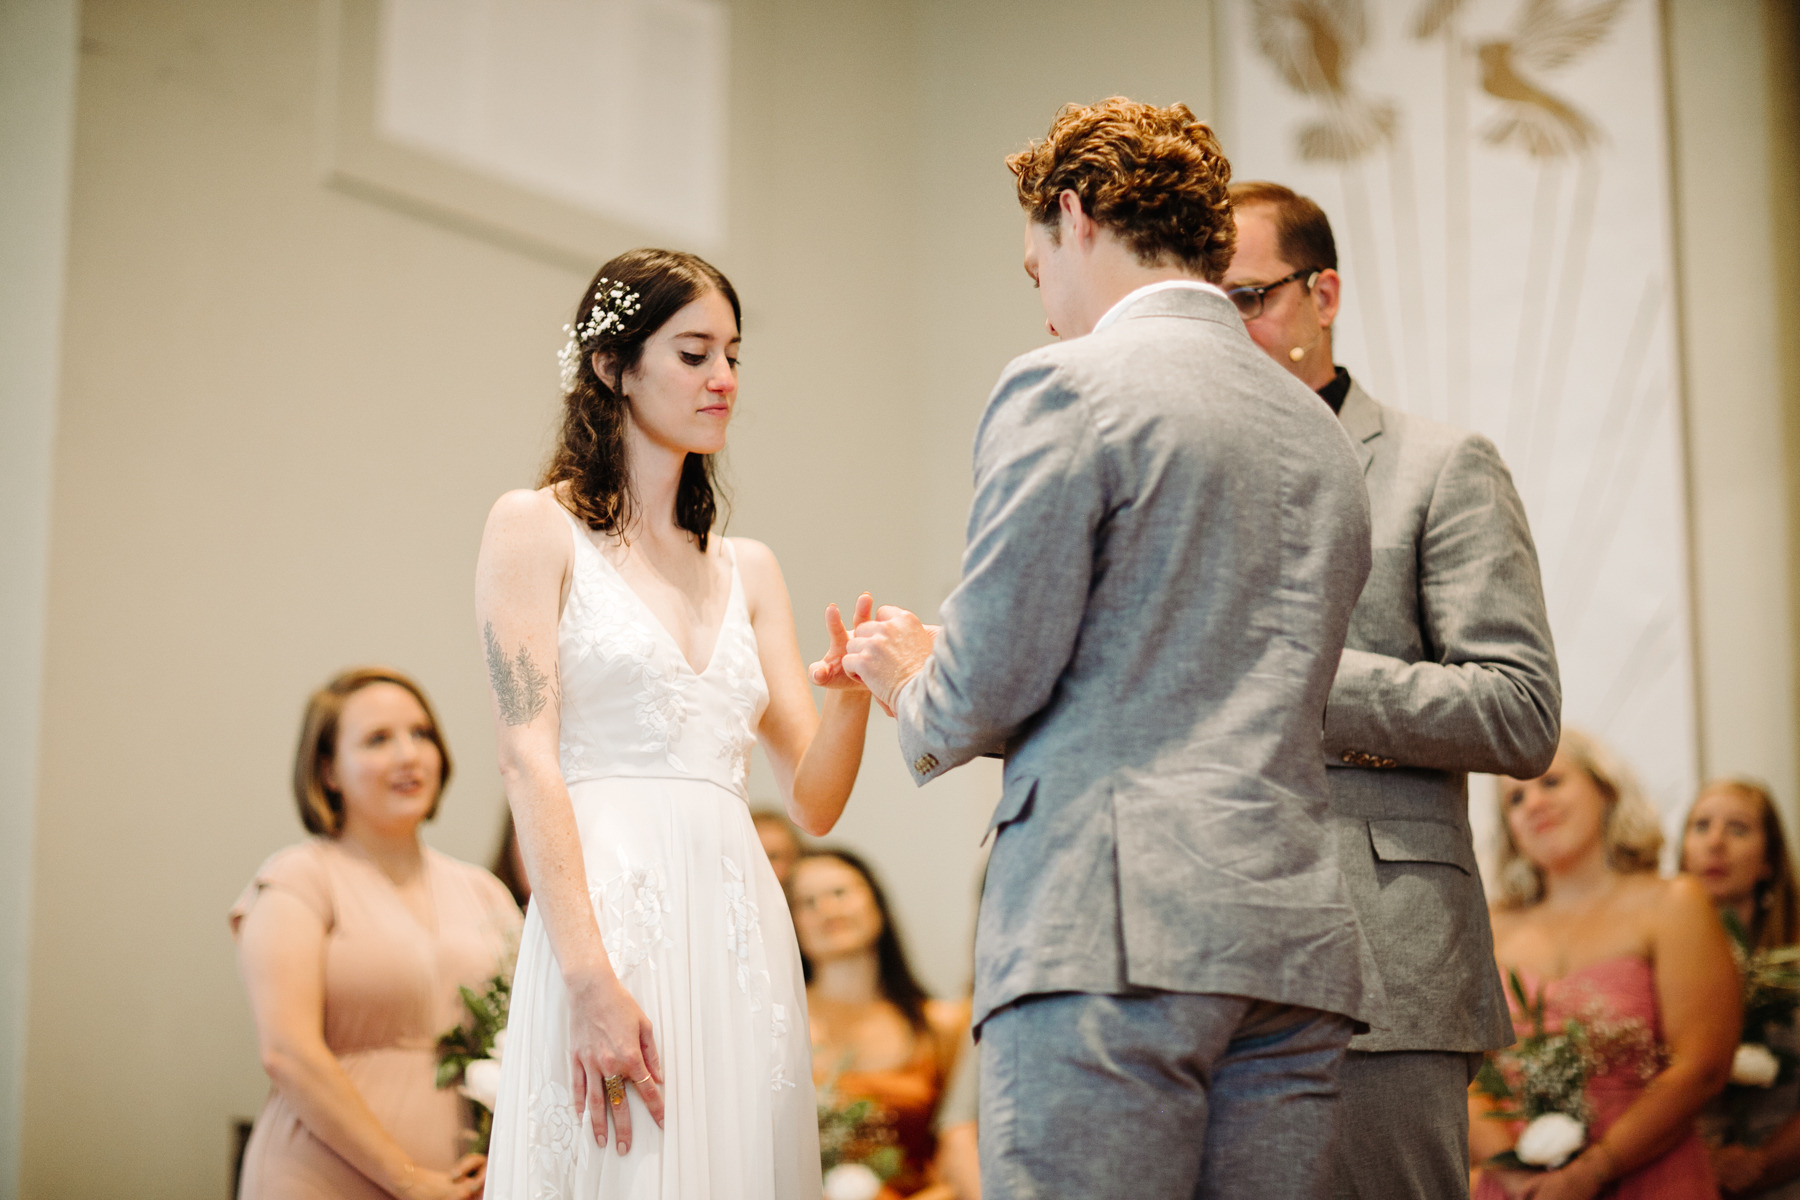 Groom putting the ring on his bride's finger at a downtown knoxville wedding at redeemer church